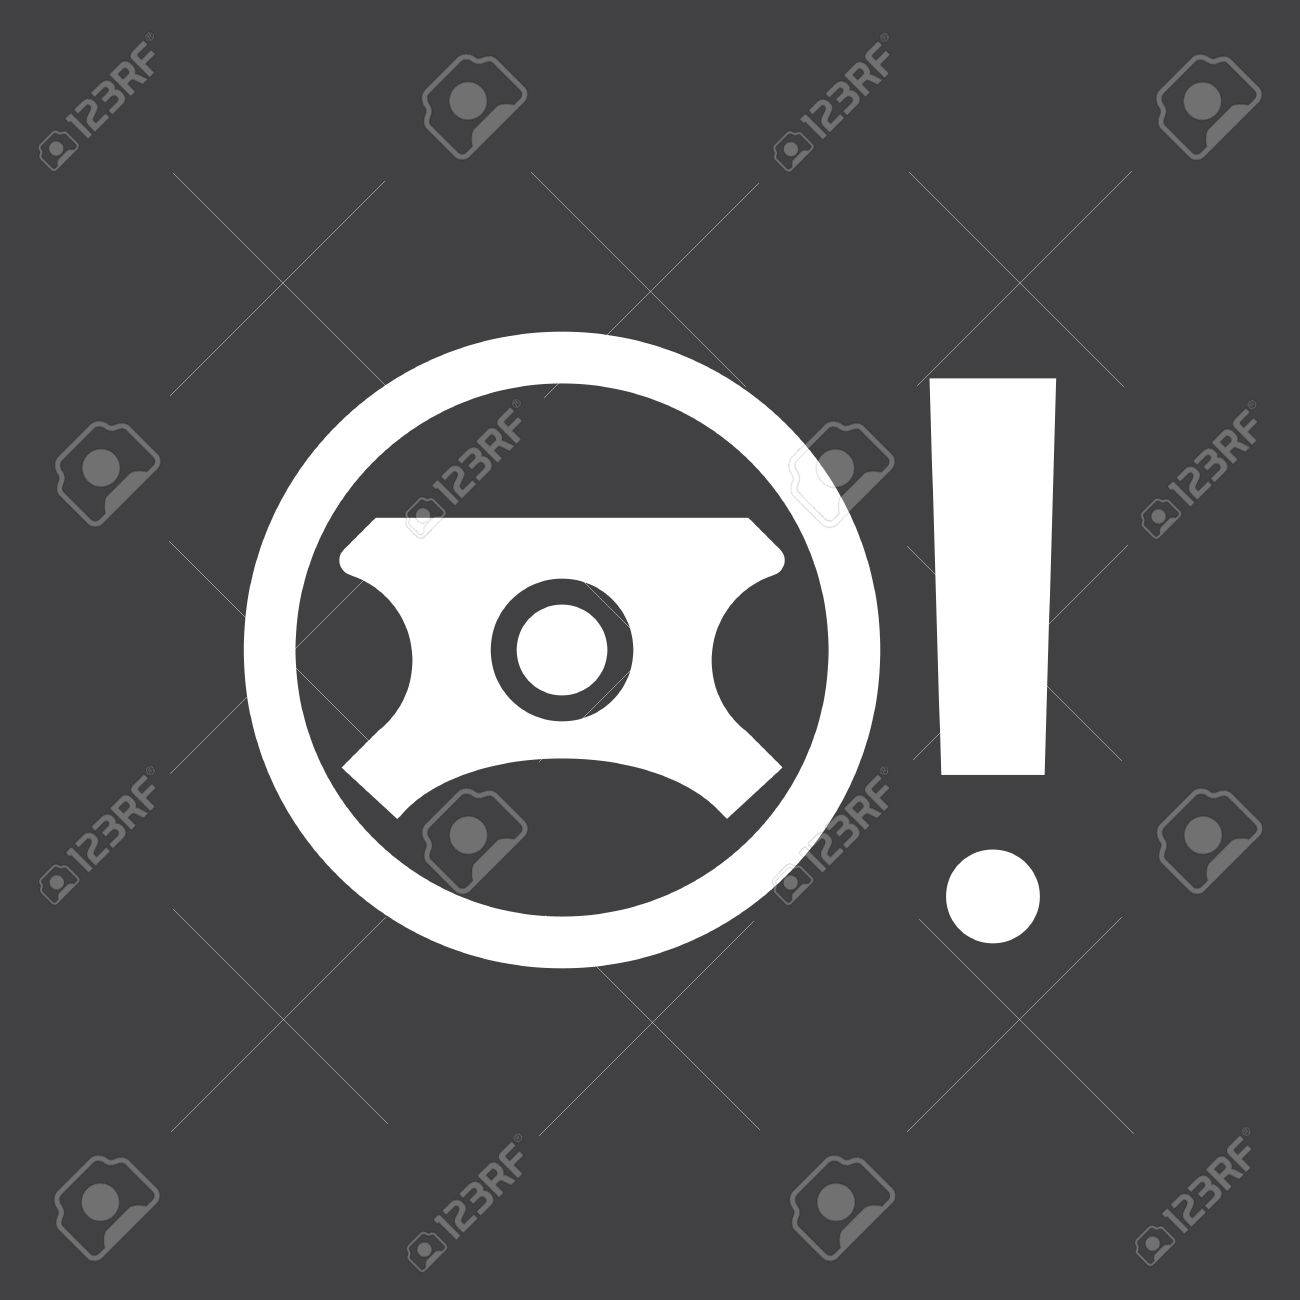 Faulty Power Steering Sign Car Dashboard Icon Vector - Car image sign of dashboardcar dashboard icons stock images royaltyfree imagesvectors